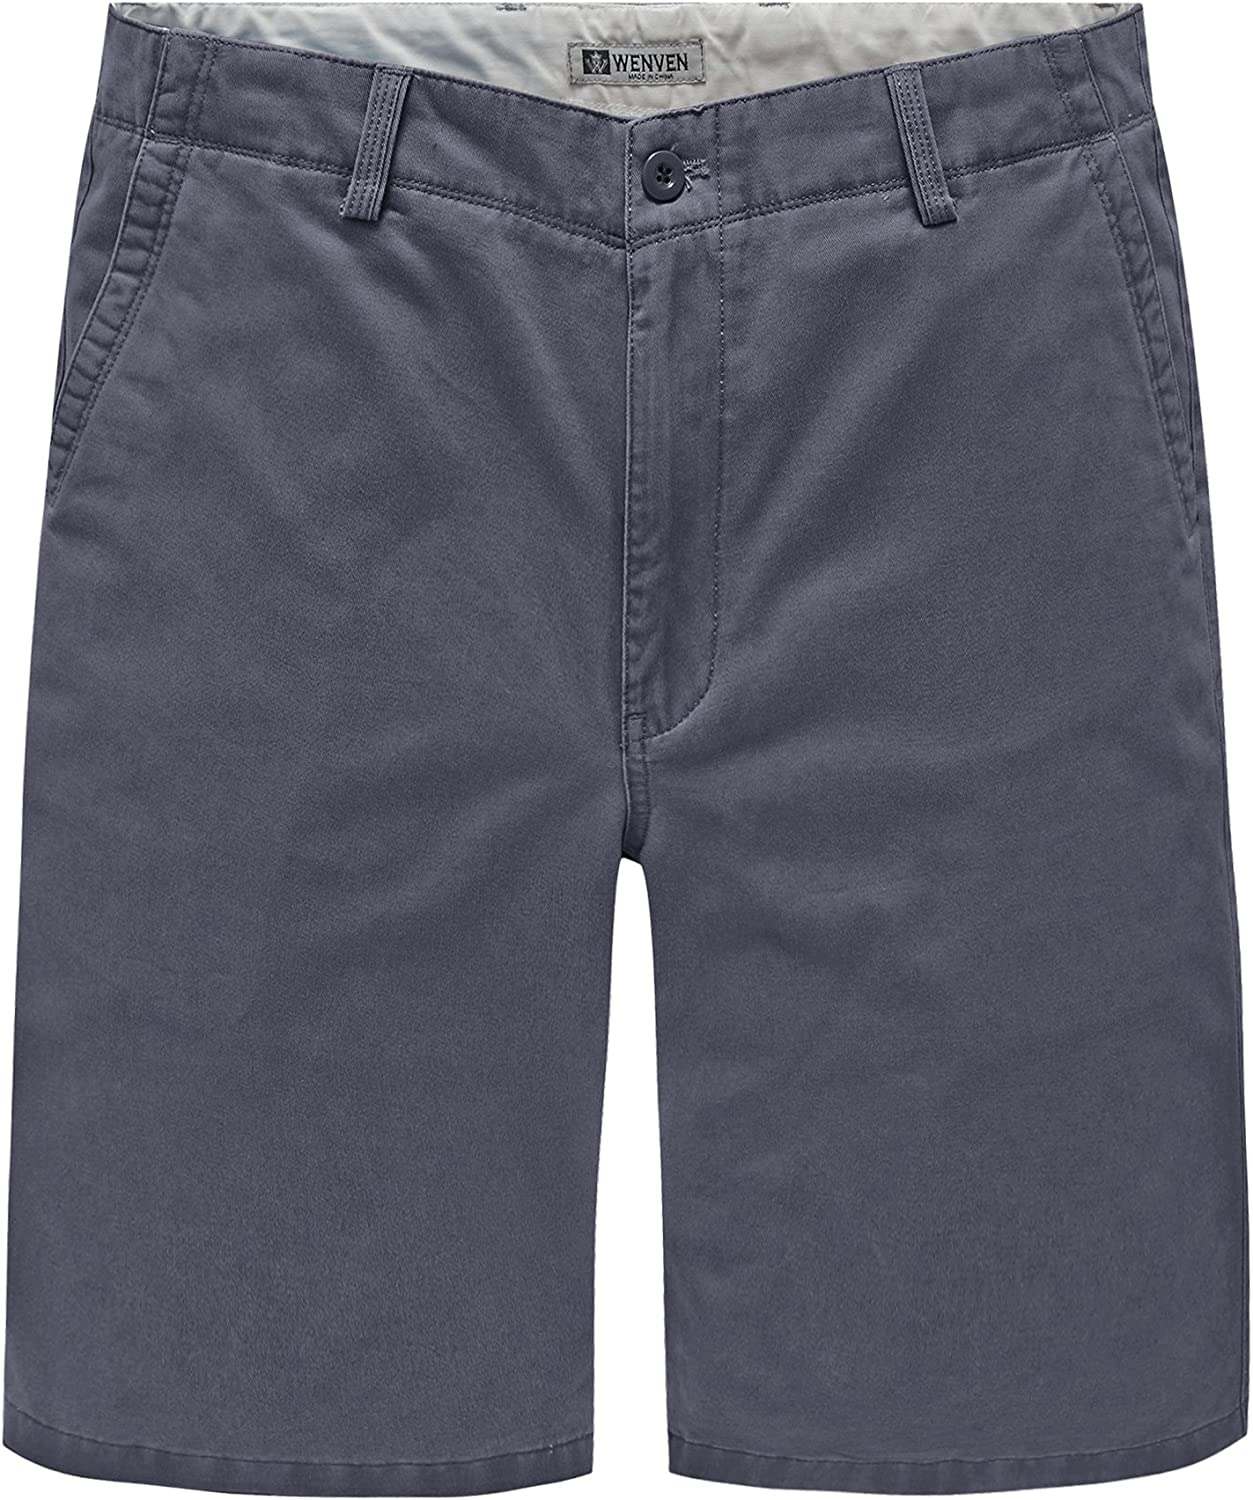 WenVen Men's 10 Inch Flat Front Chino Shorts